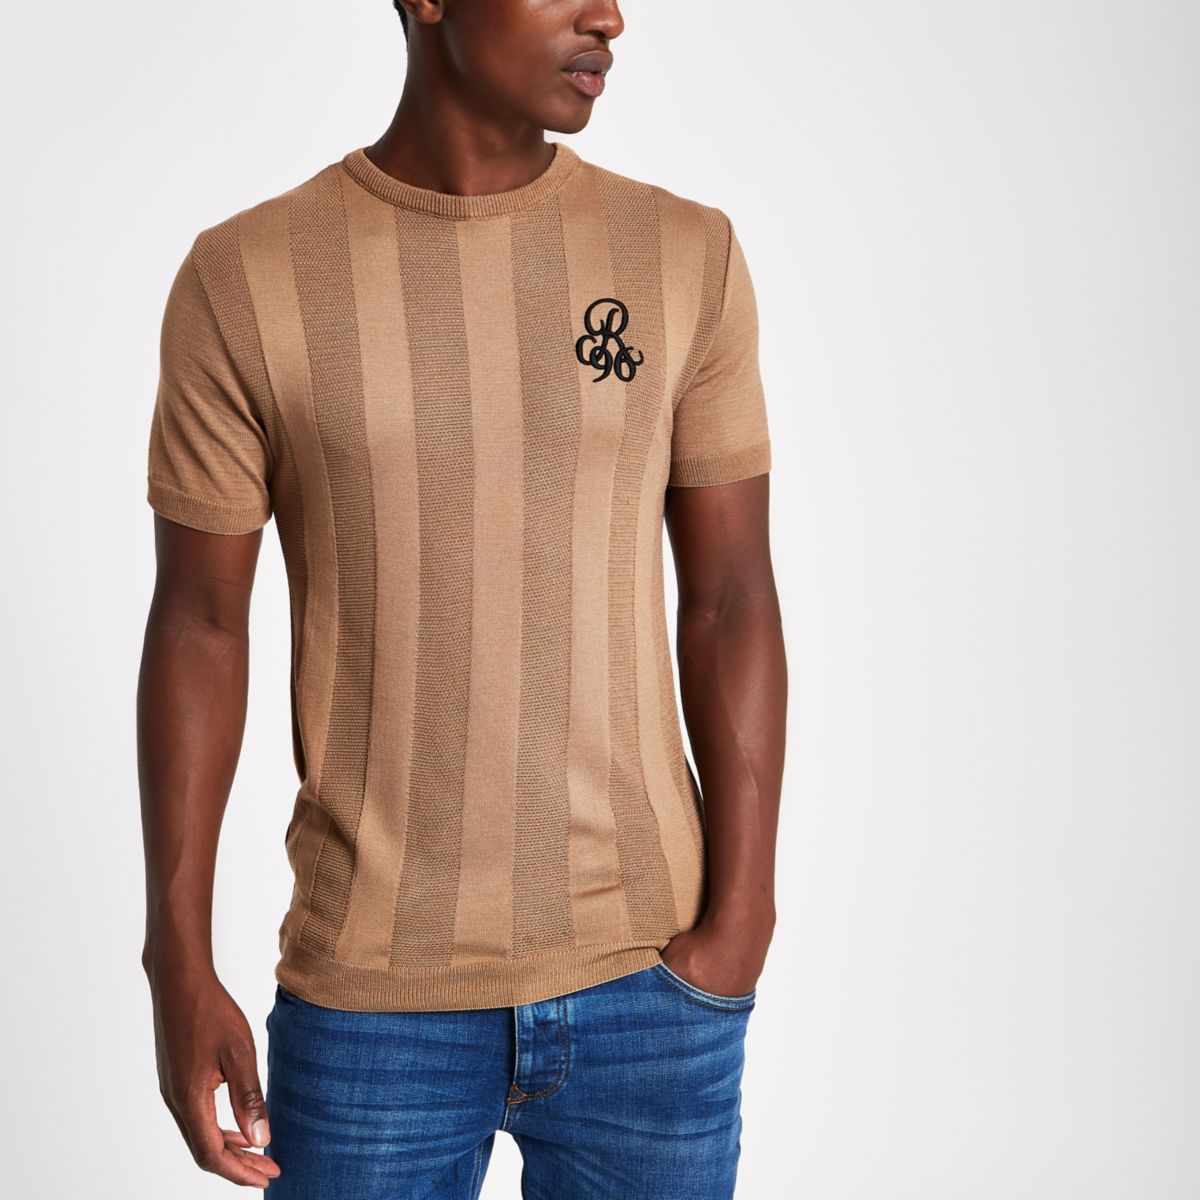 Light brown muscle fit 'R96' T-shirt